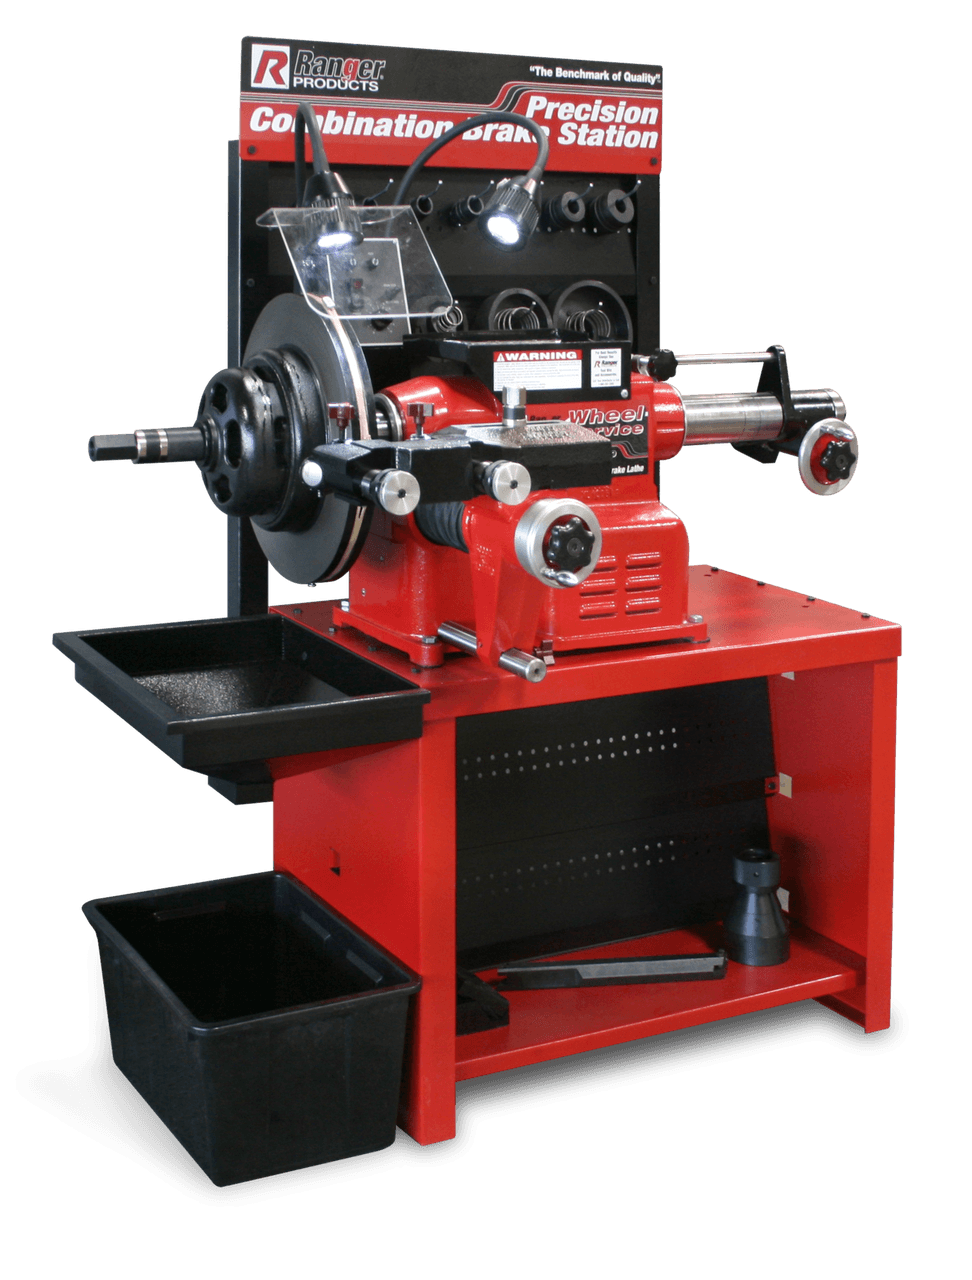 Ranger Rl-8500 Combination Brake Lathe